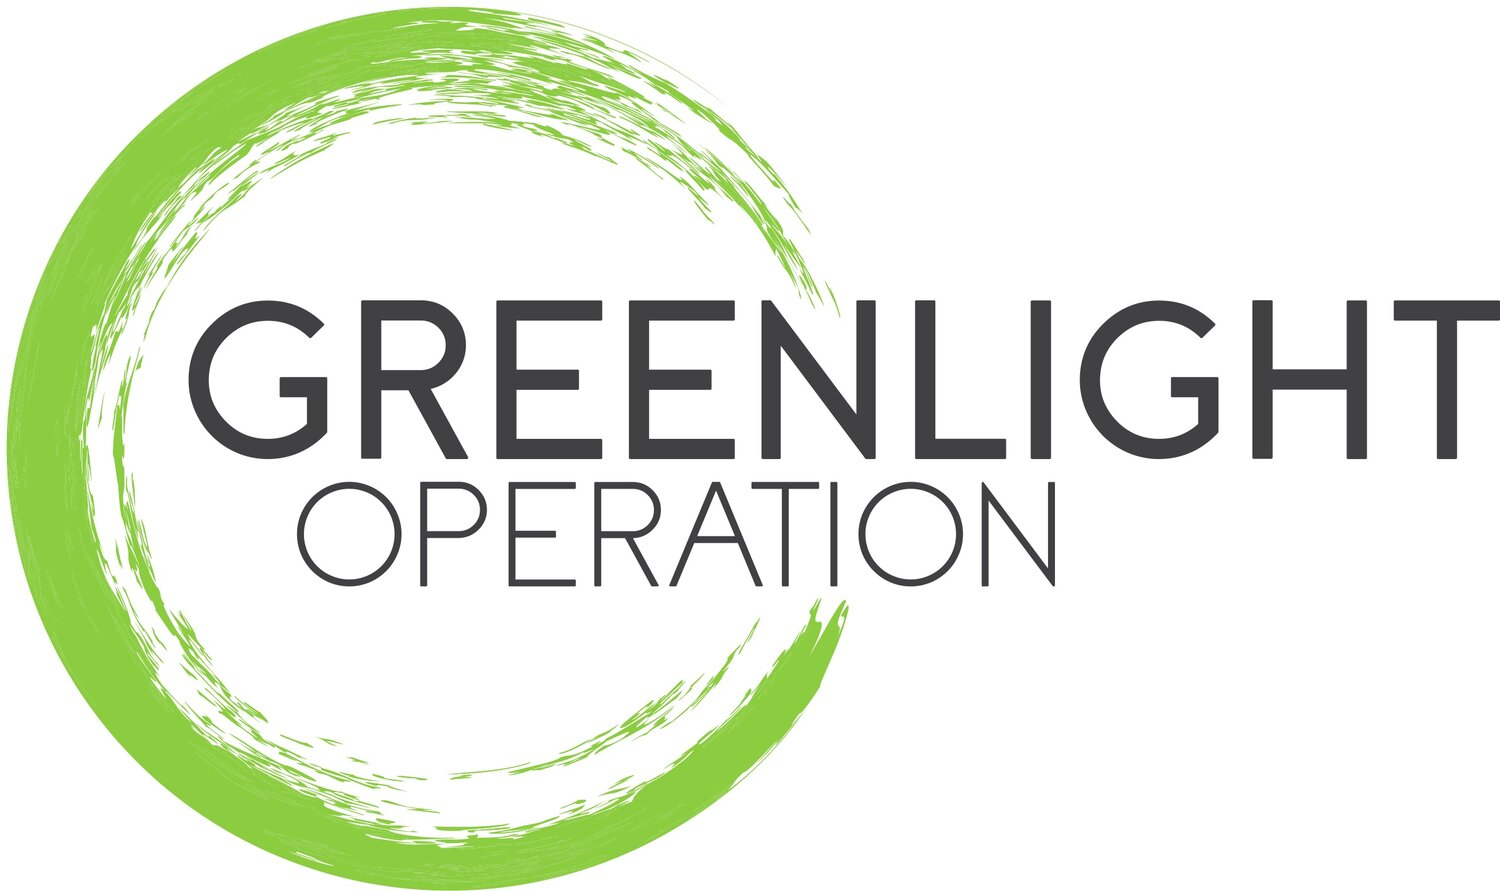 Greenlight Operation